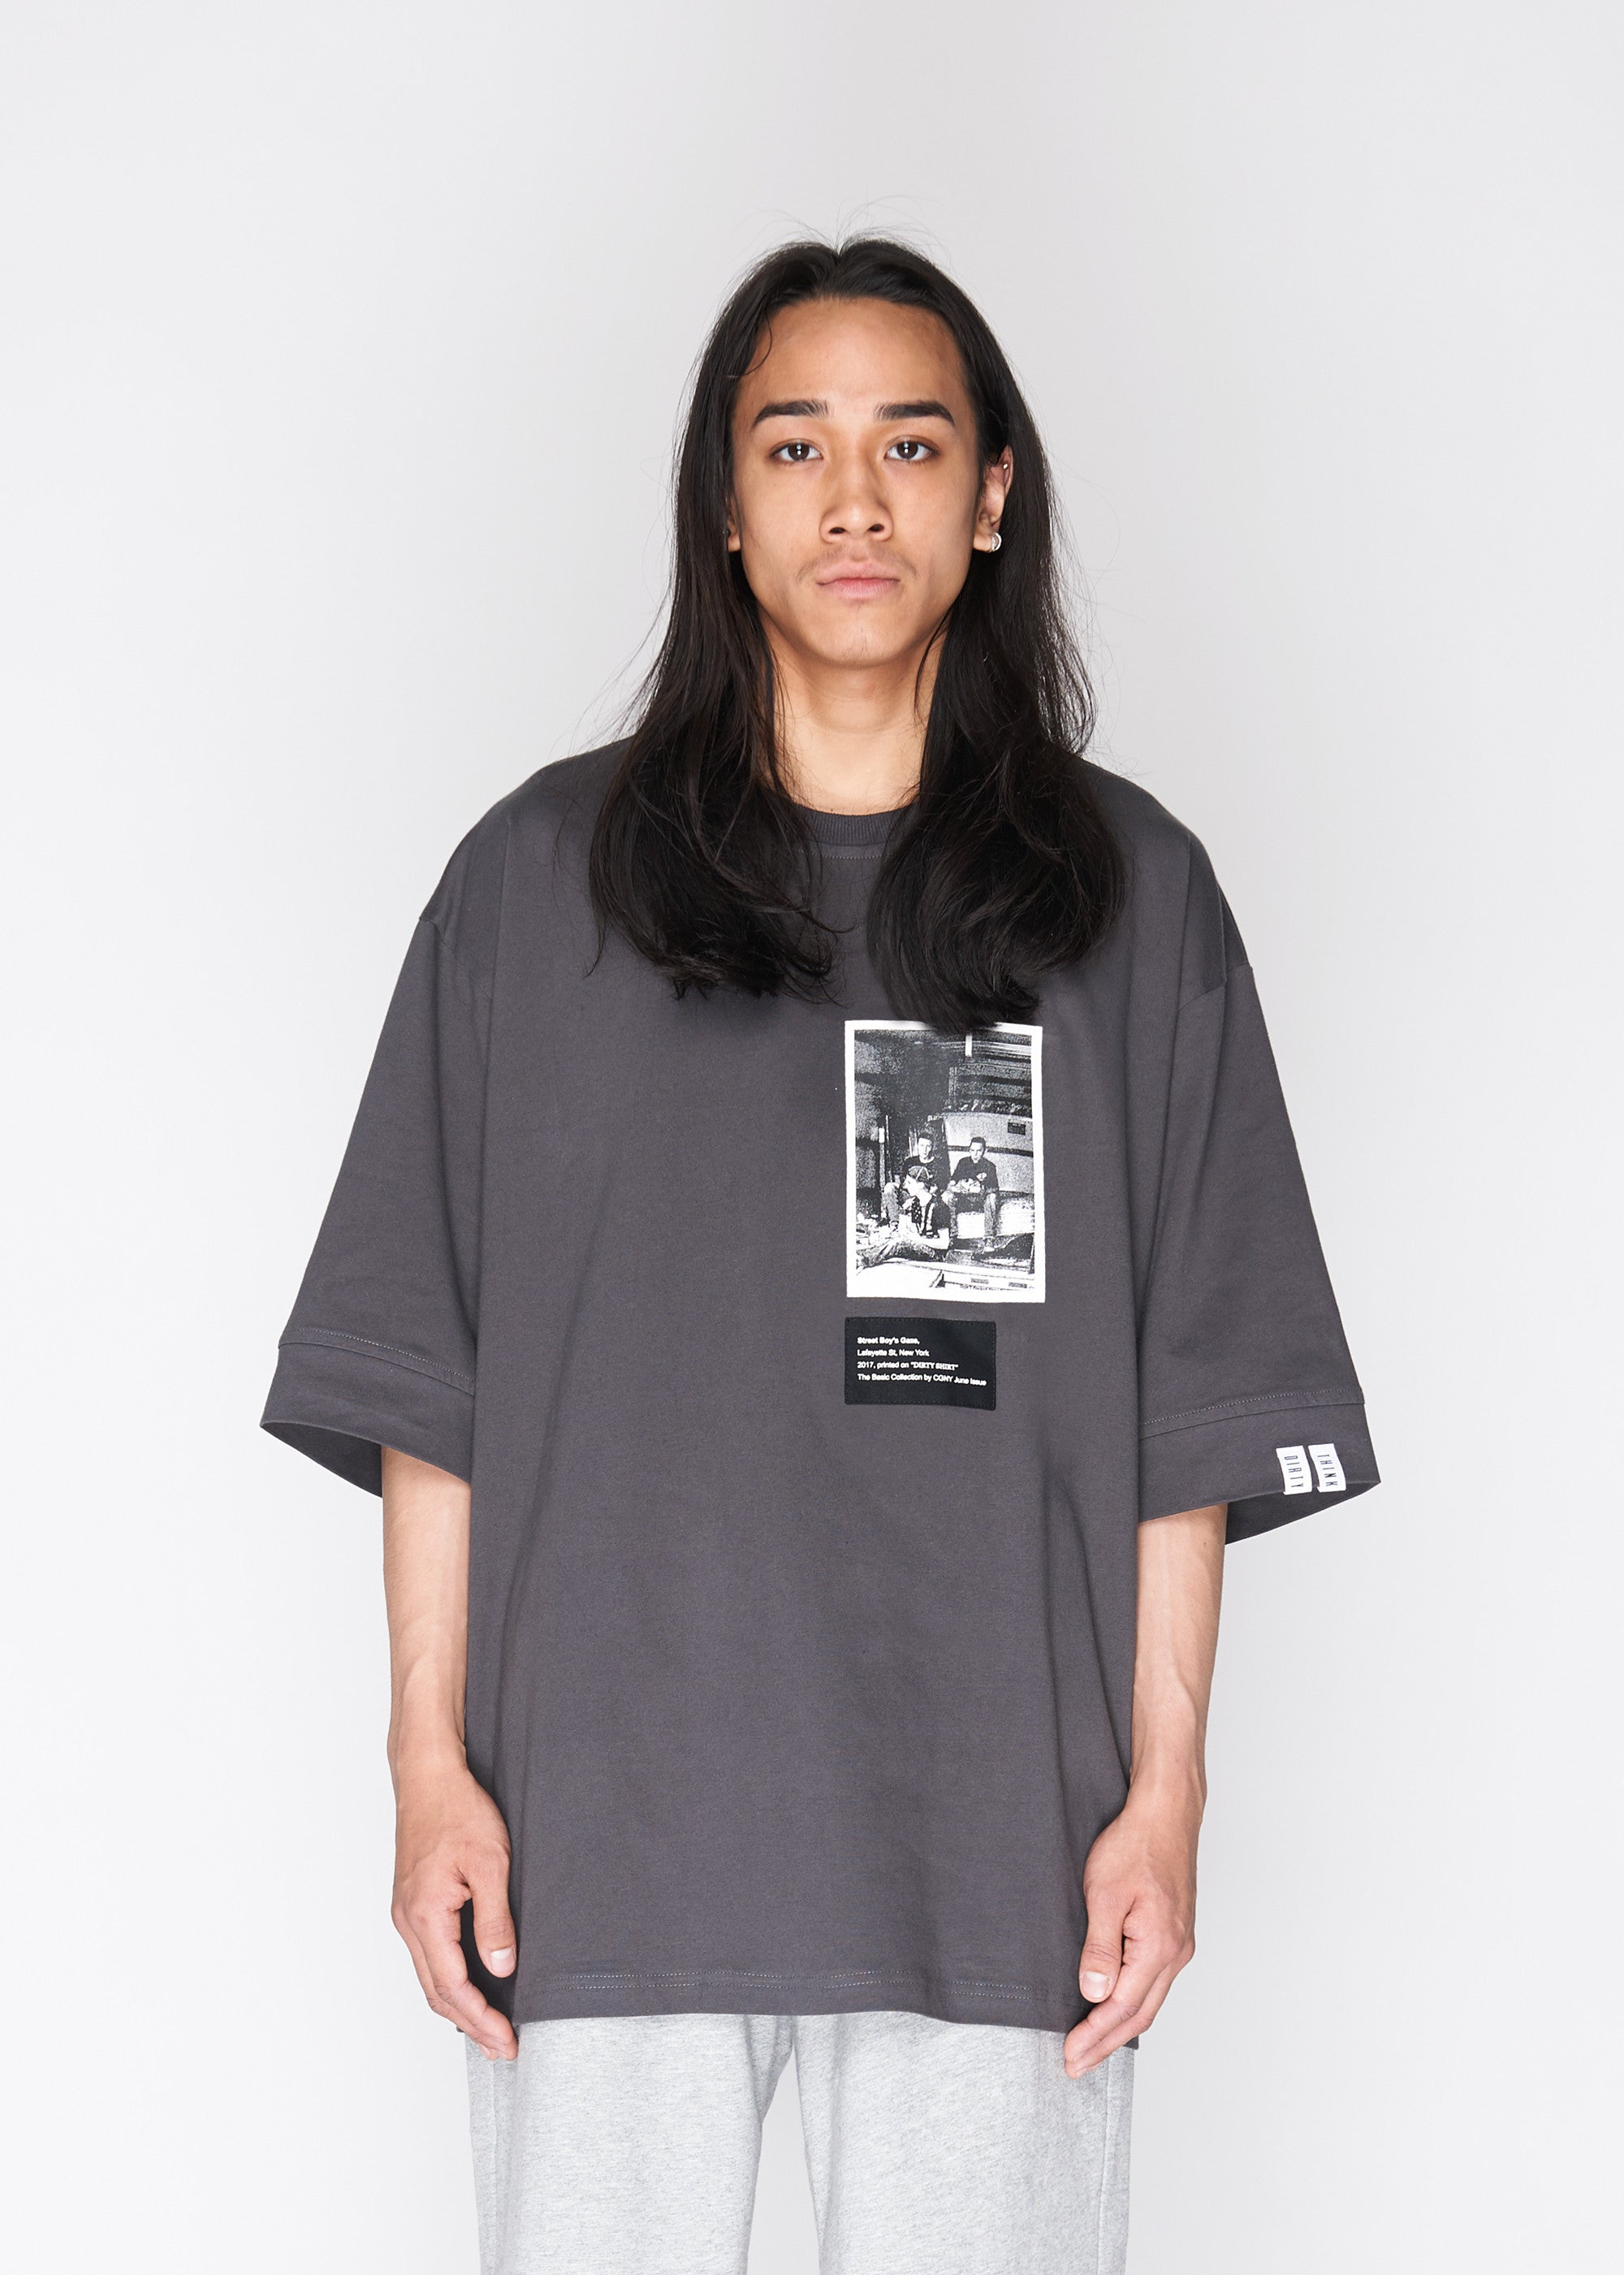 Oversized Photo Tee in Charcoal - CGNY